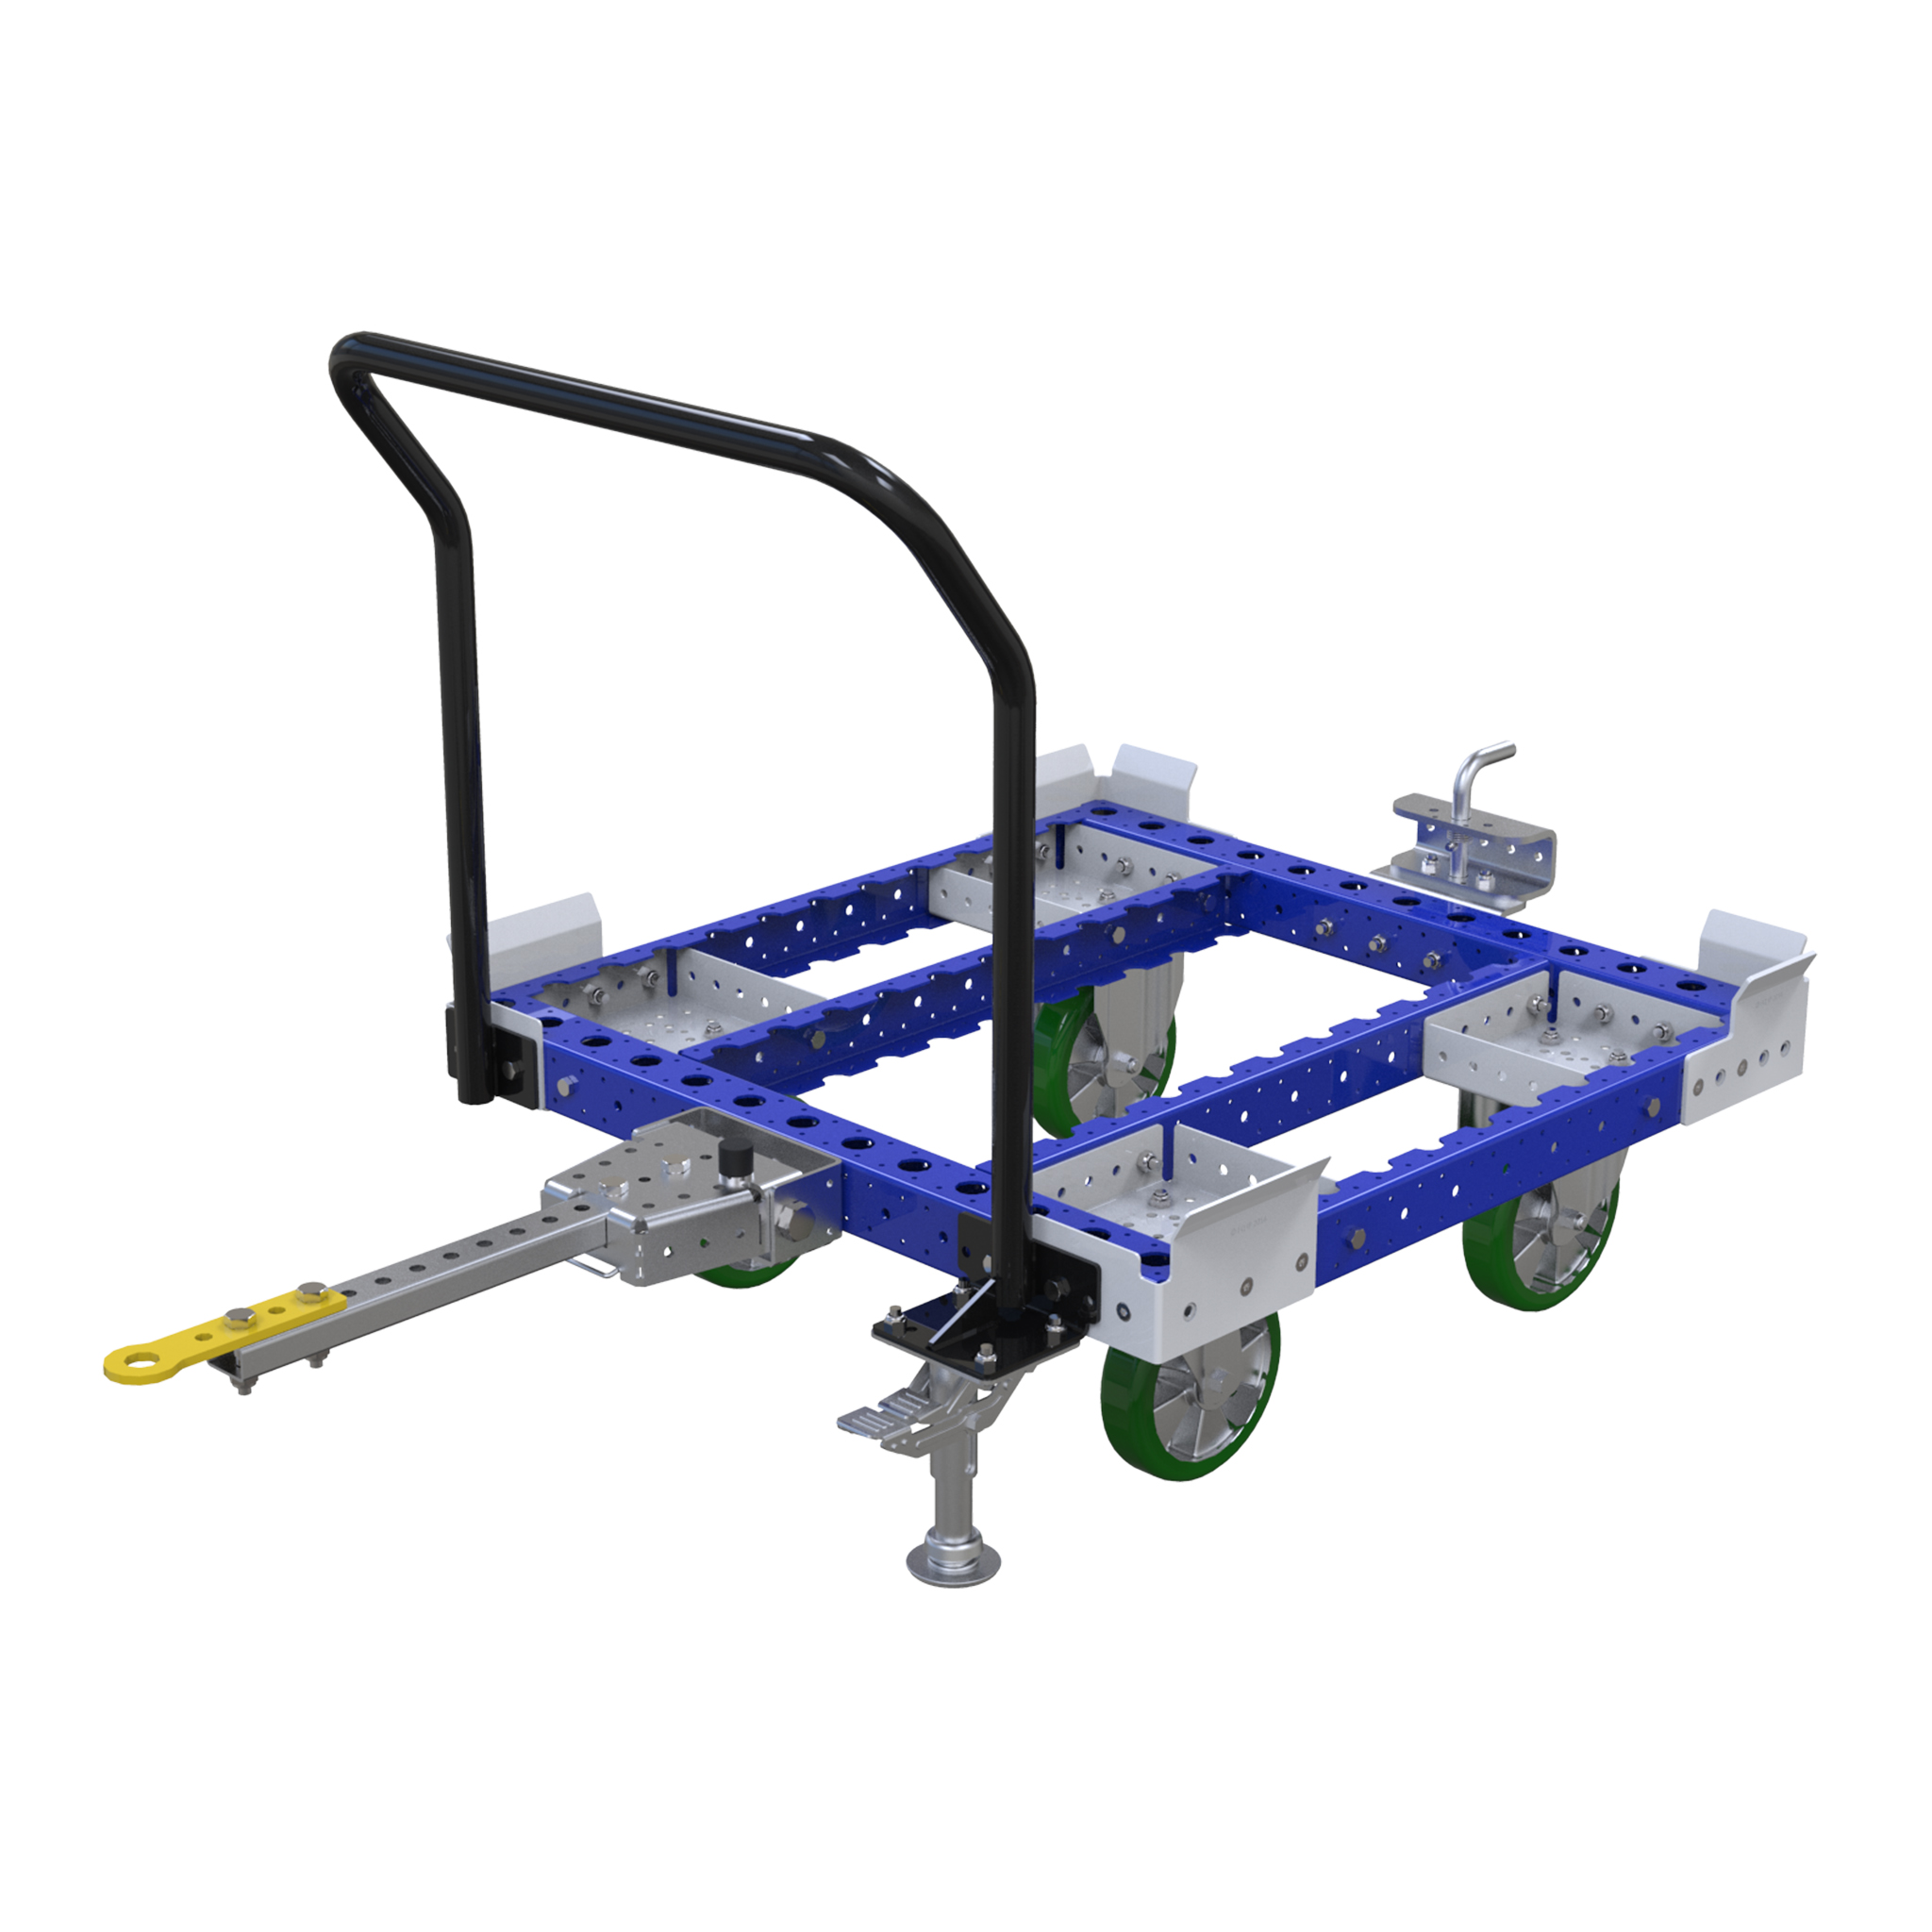 Standard pallet cart used for transporting pallets and containers.